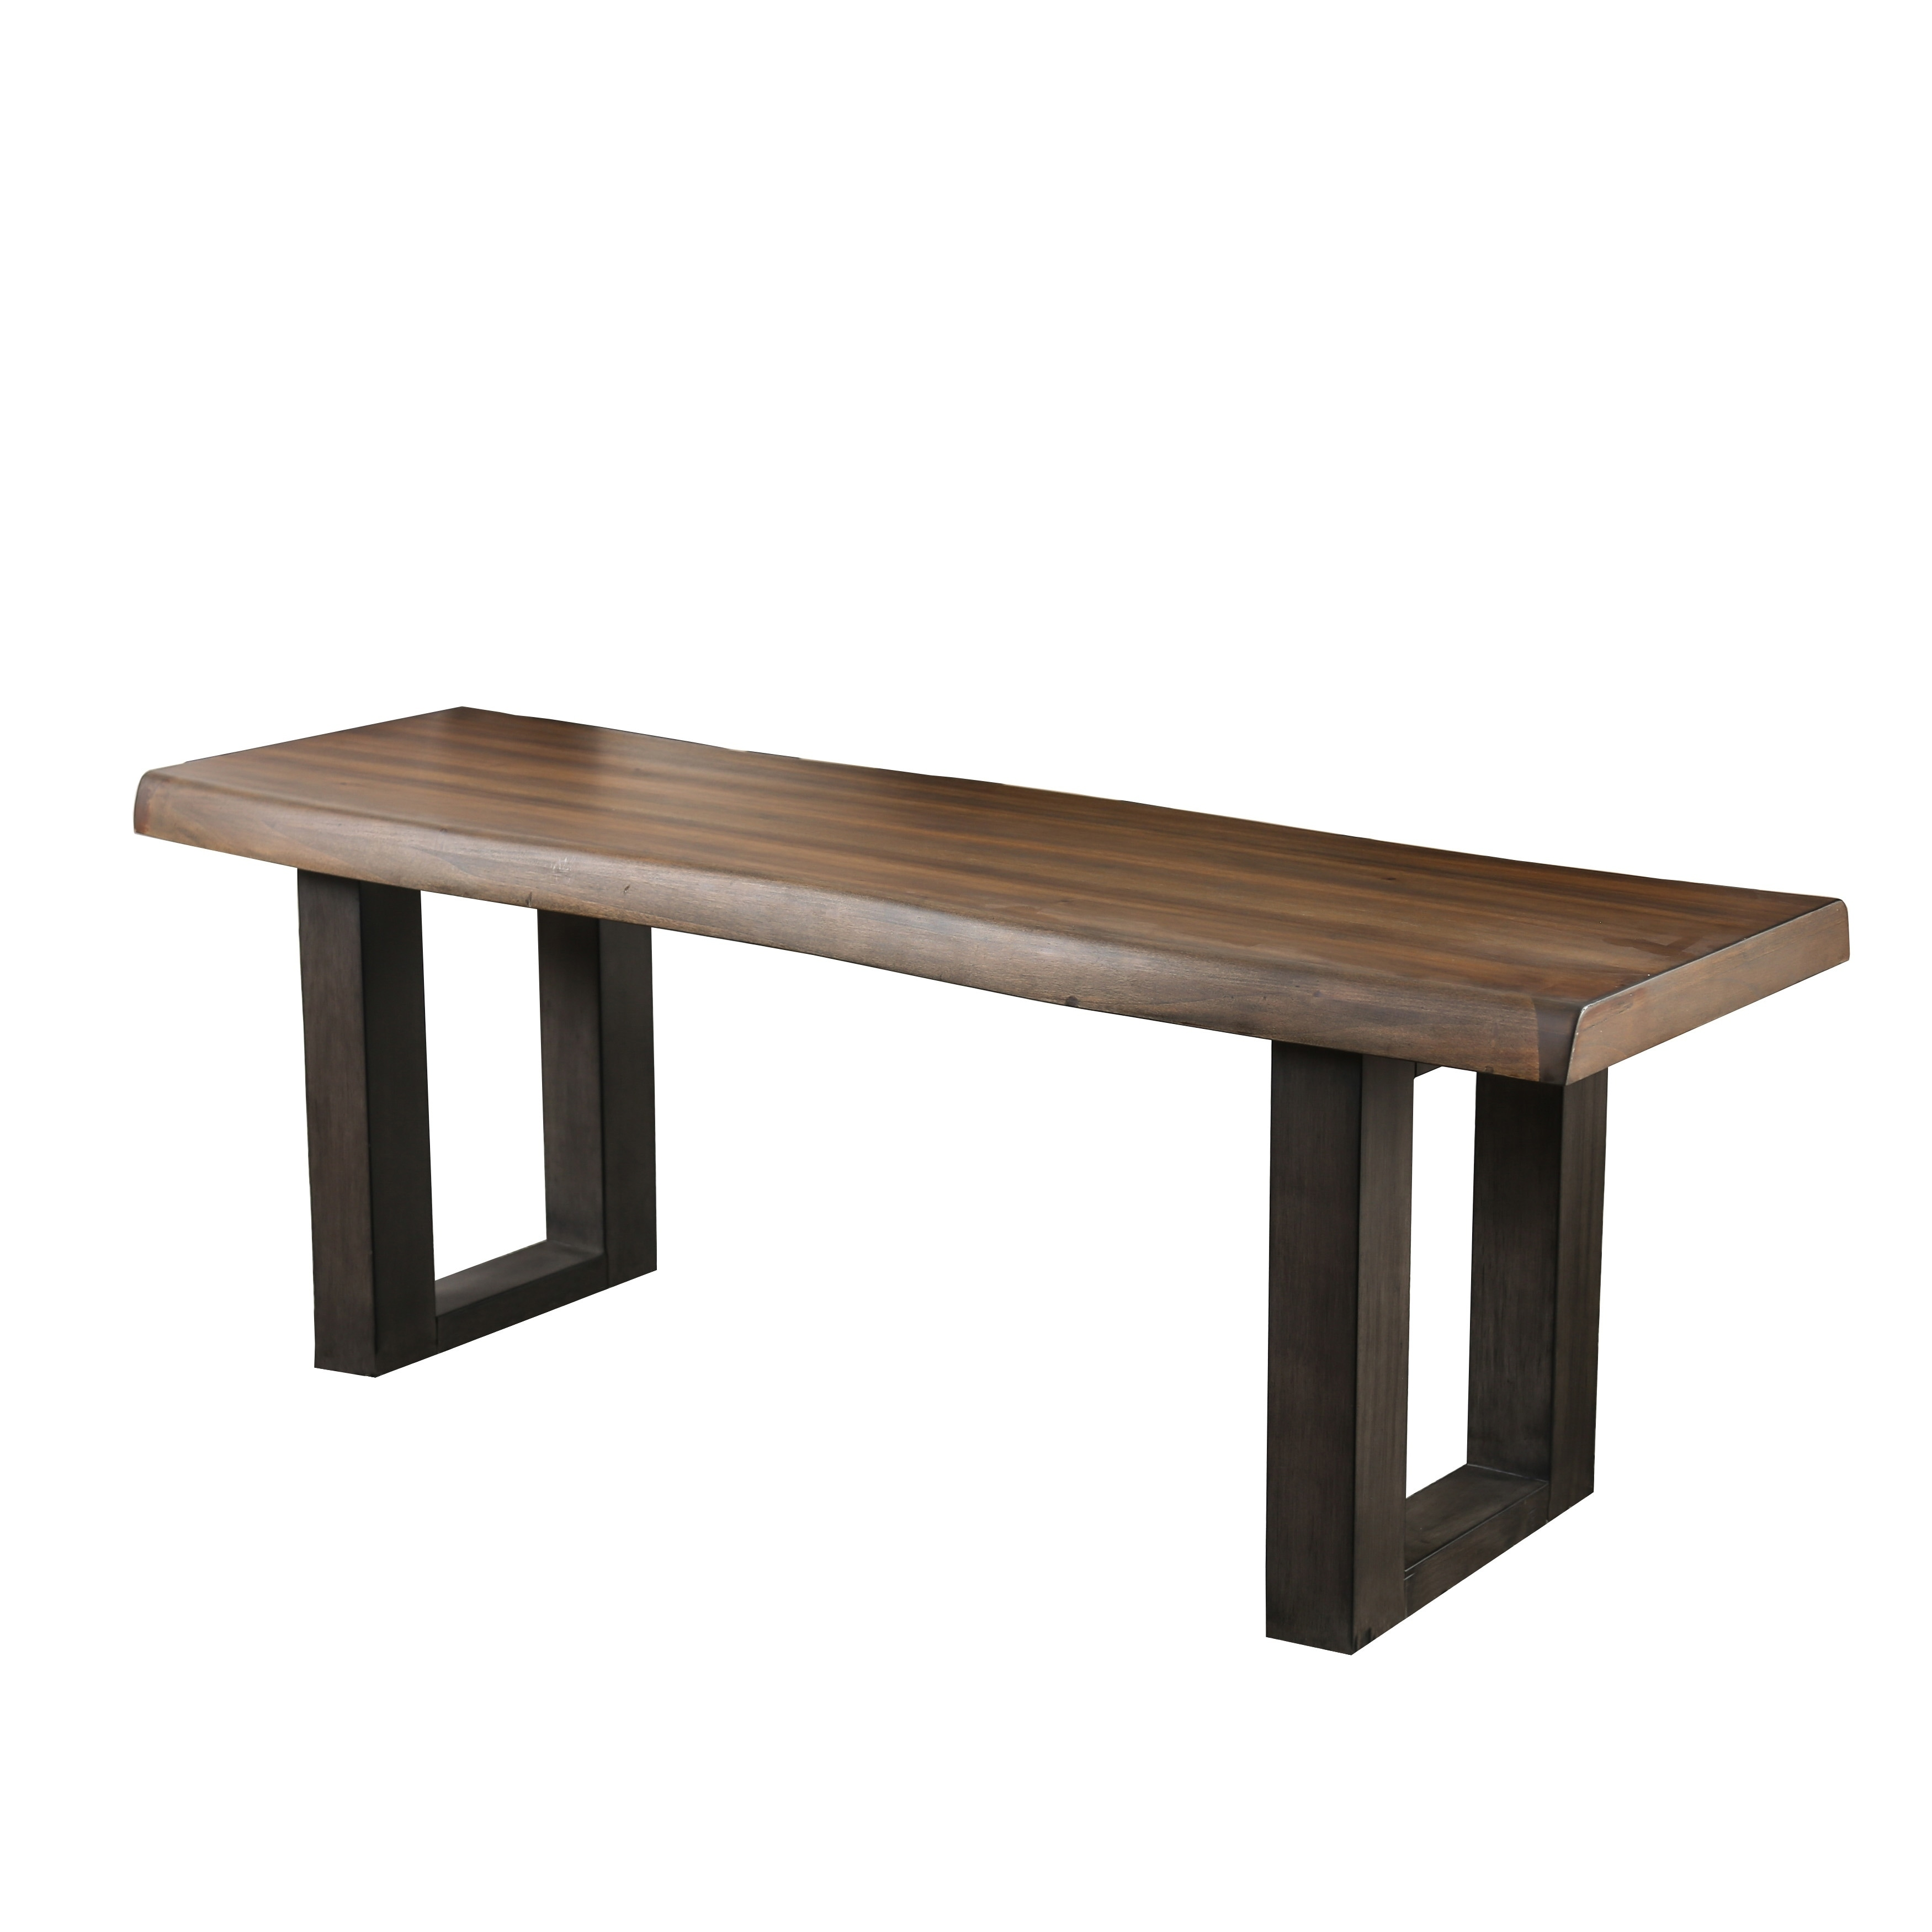 Shop Furniture Of America Tomas Rustic 50 Inch Dining Bench On